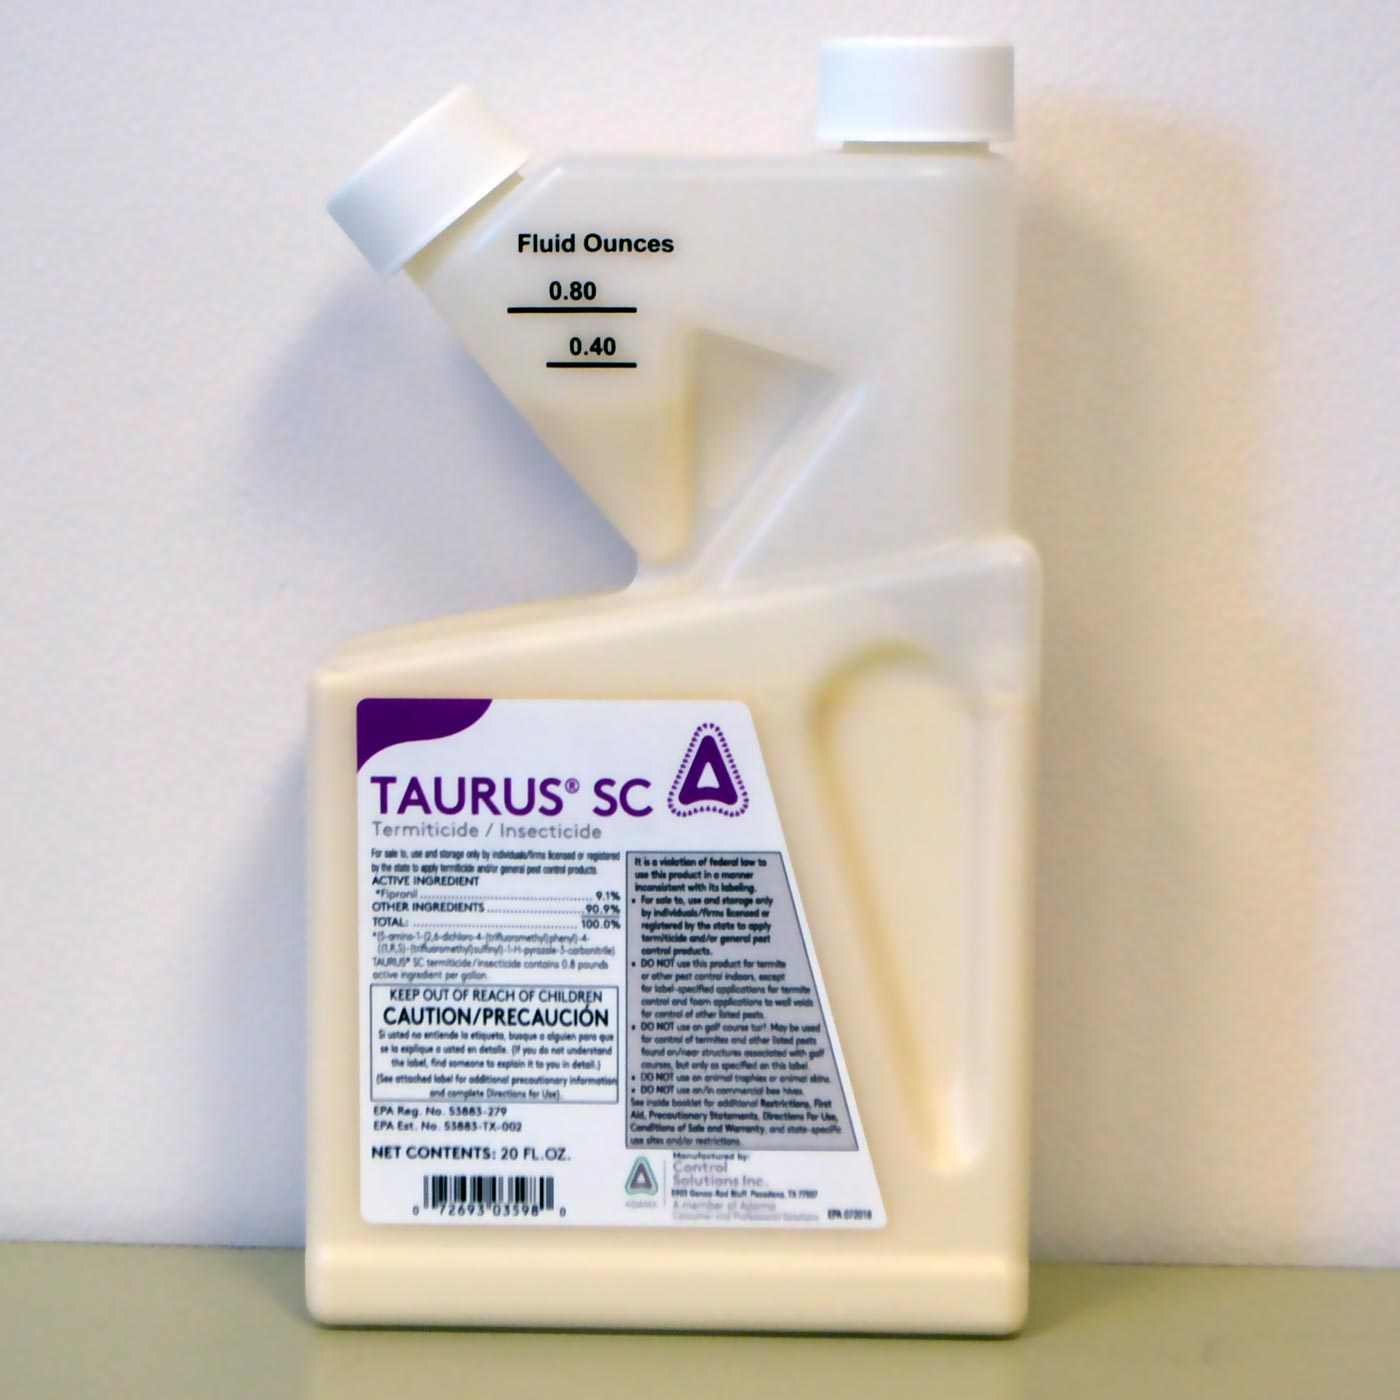 Taurus SC Insecticide (20 Oz). For Termites, Ants, And